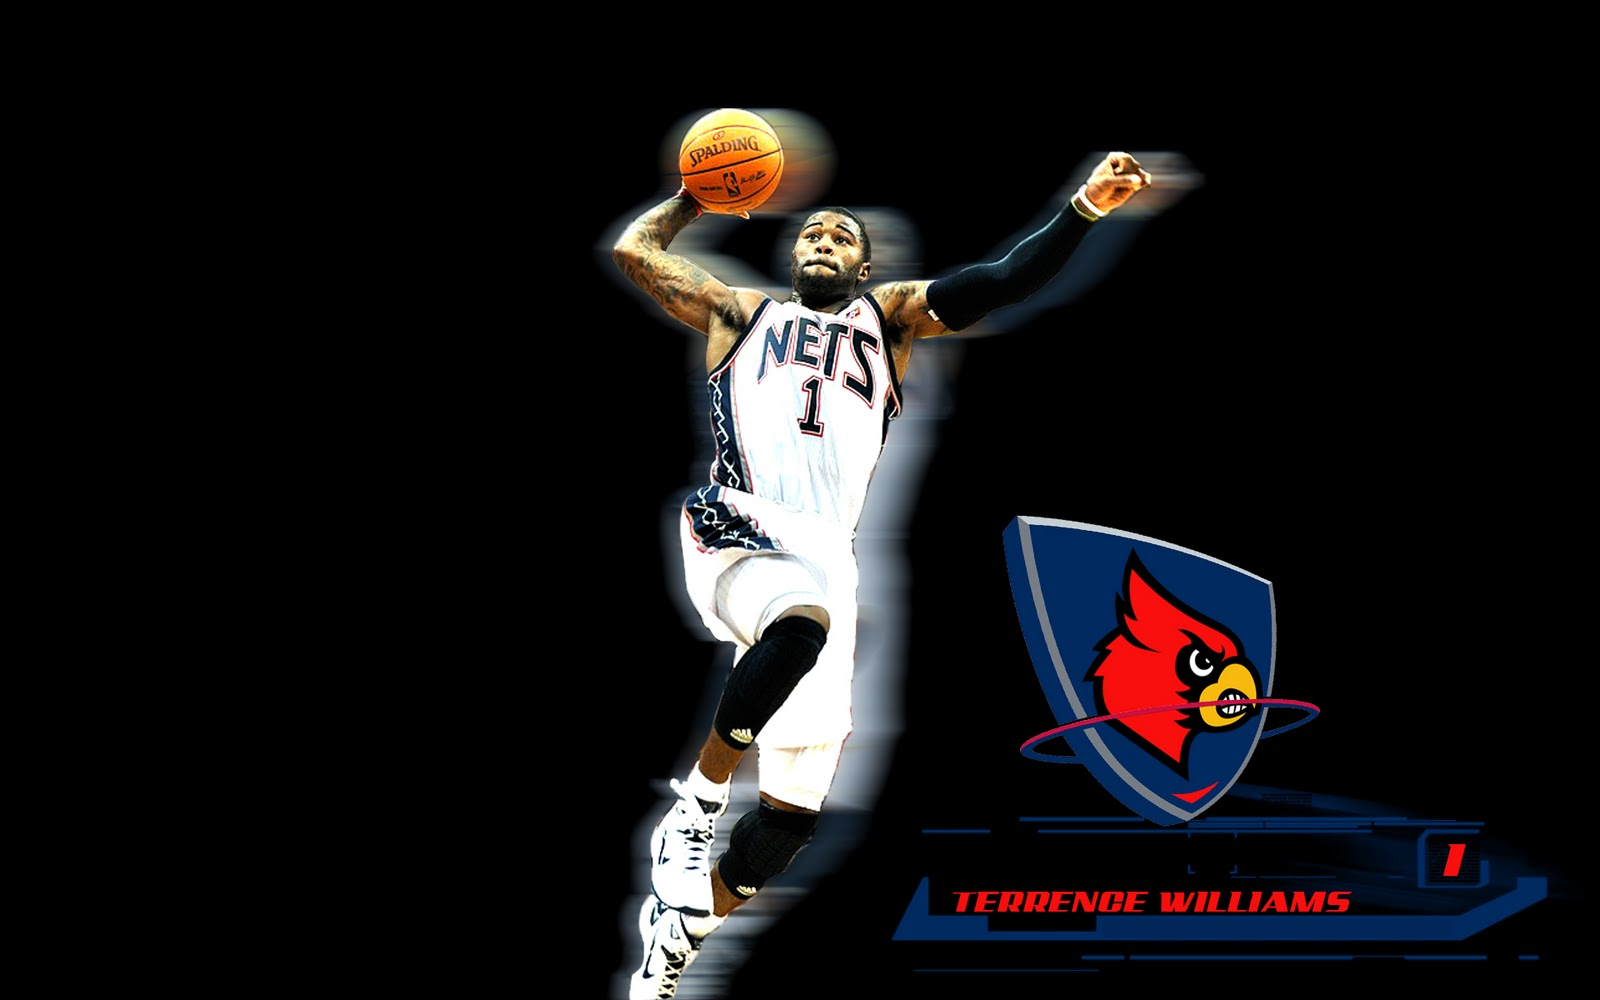 Terrence Williams NBA basketball wallpapers NBA Wallpapers 1600x1000